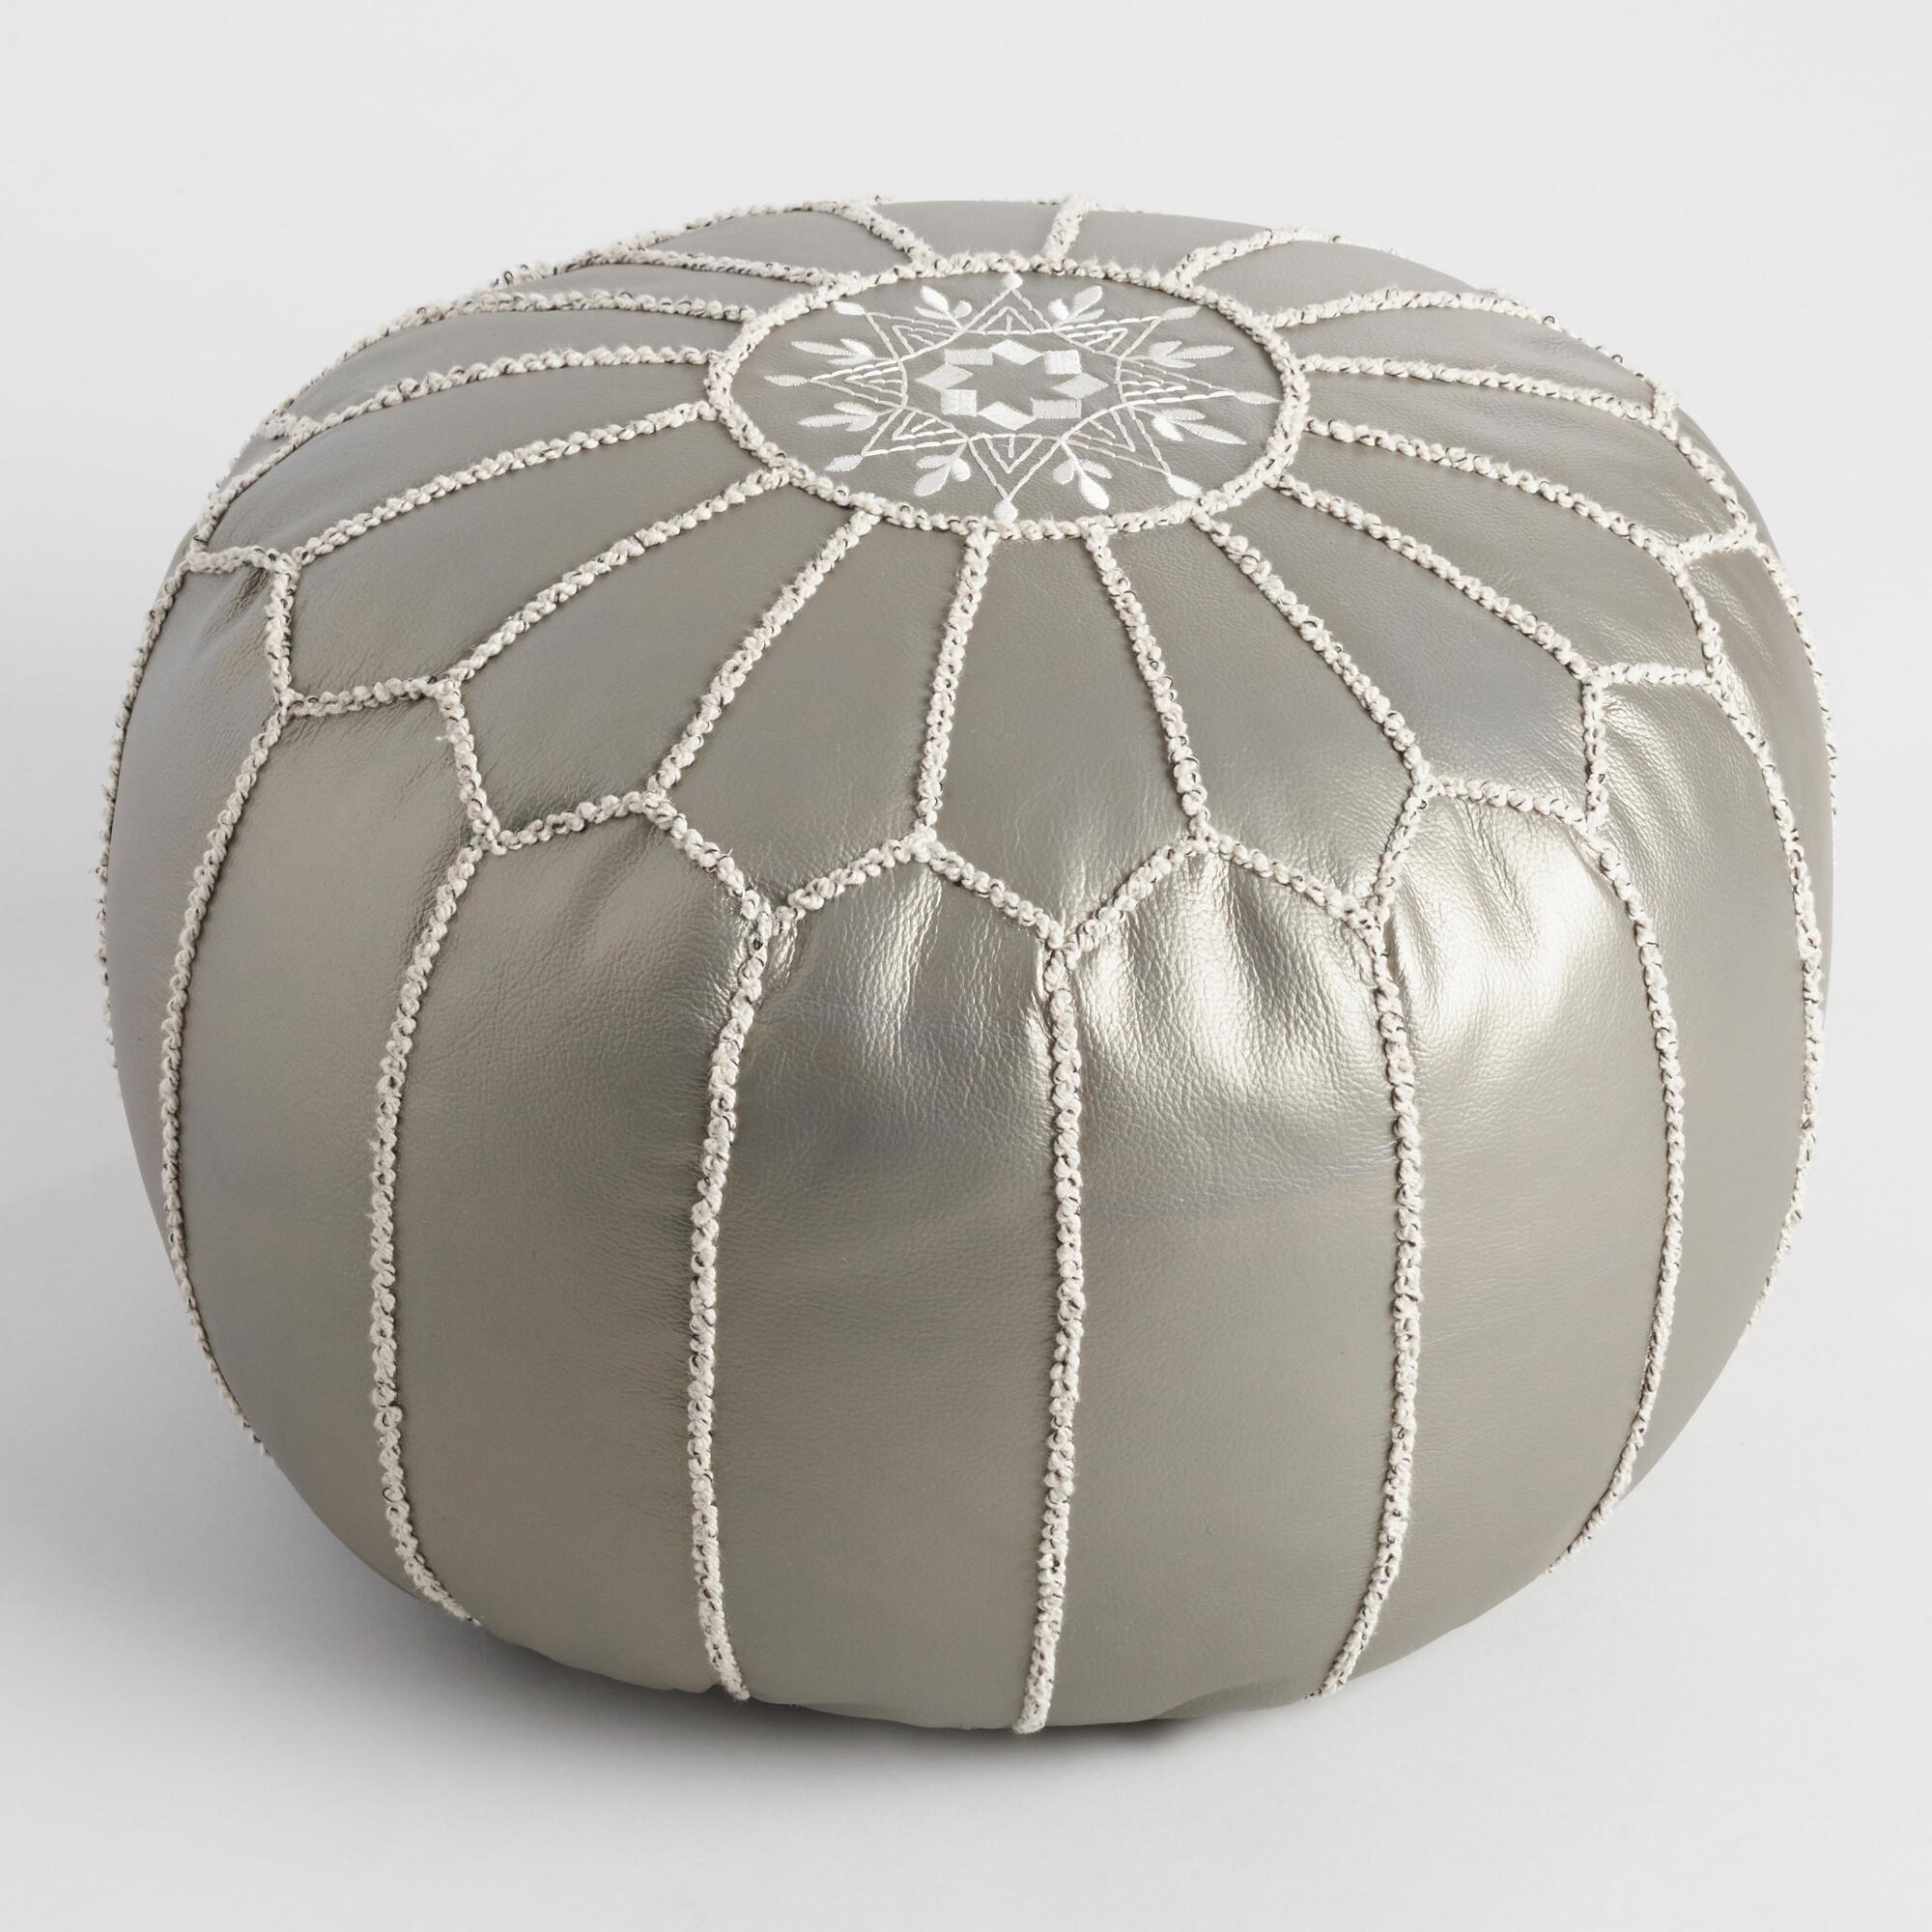 metallic embroidered leather pouf world market. Black Bedroom Furniture Sets. Home Design Ideas